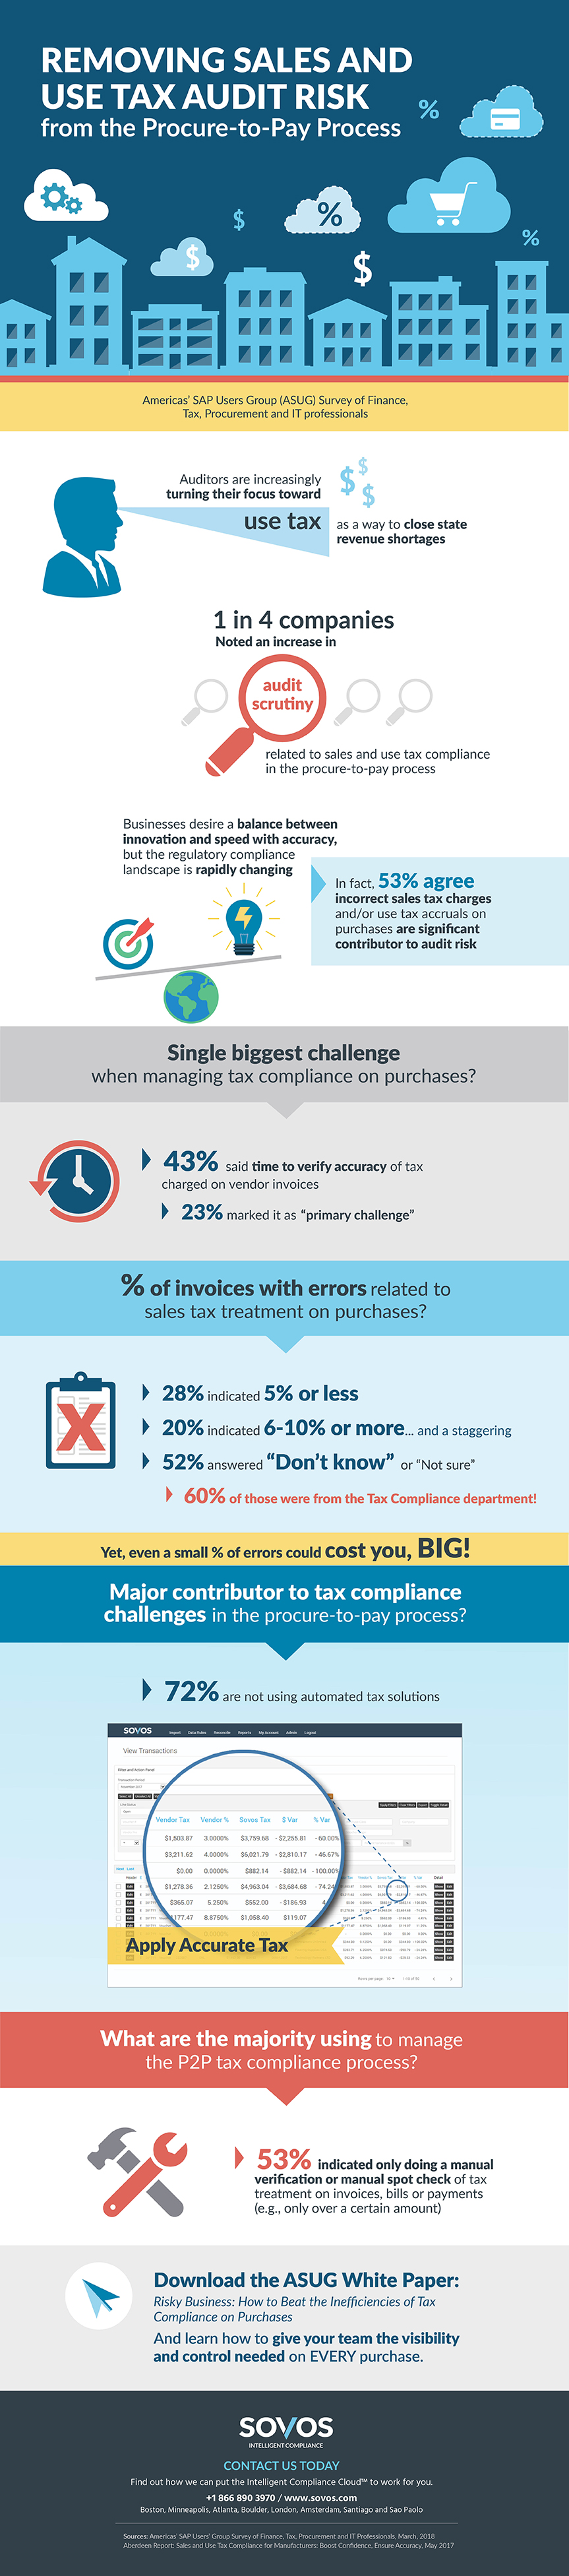 Procure-to-Pay Sales Tax Audit Risk Infographic - Sovos ASUG